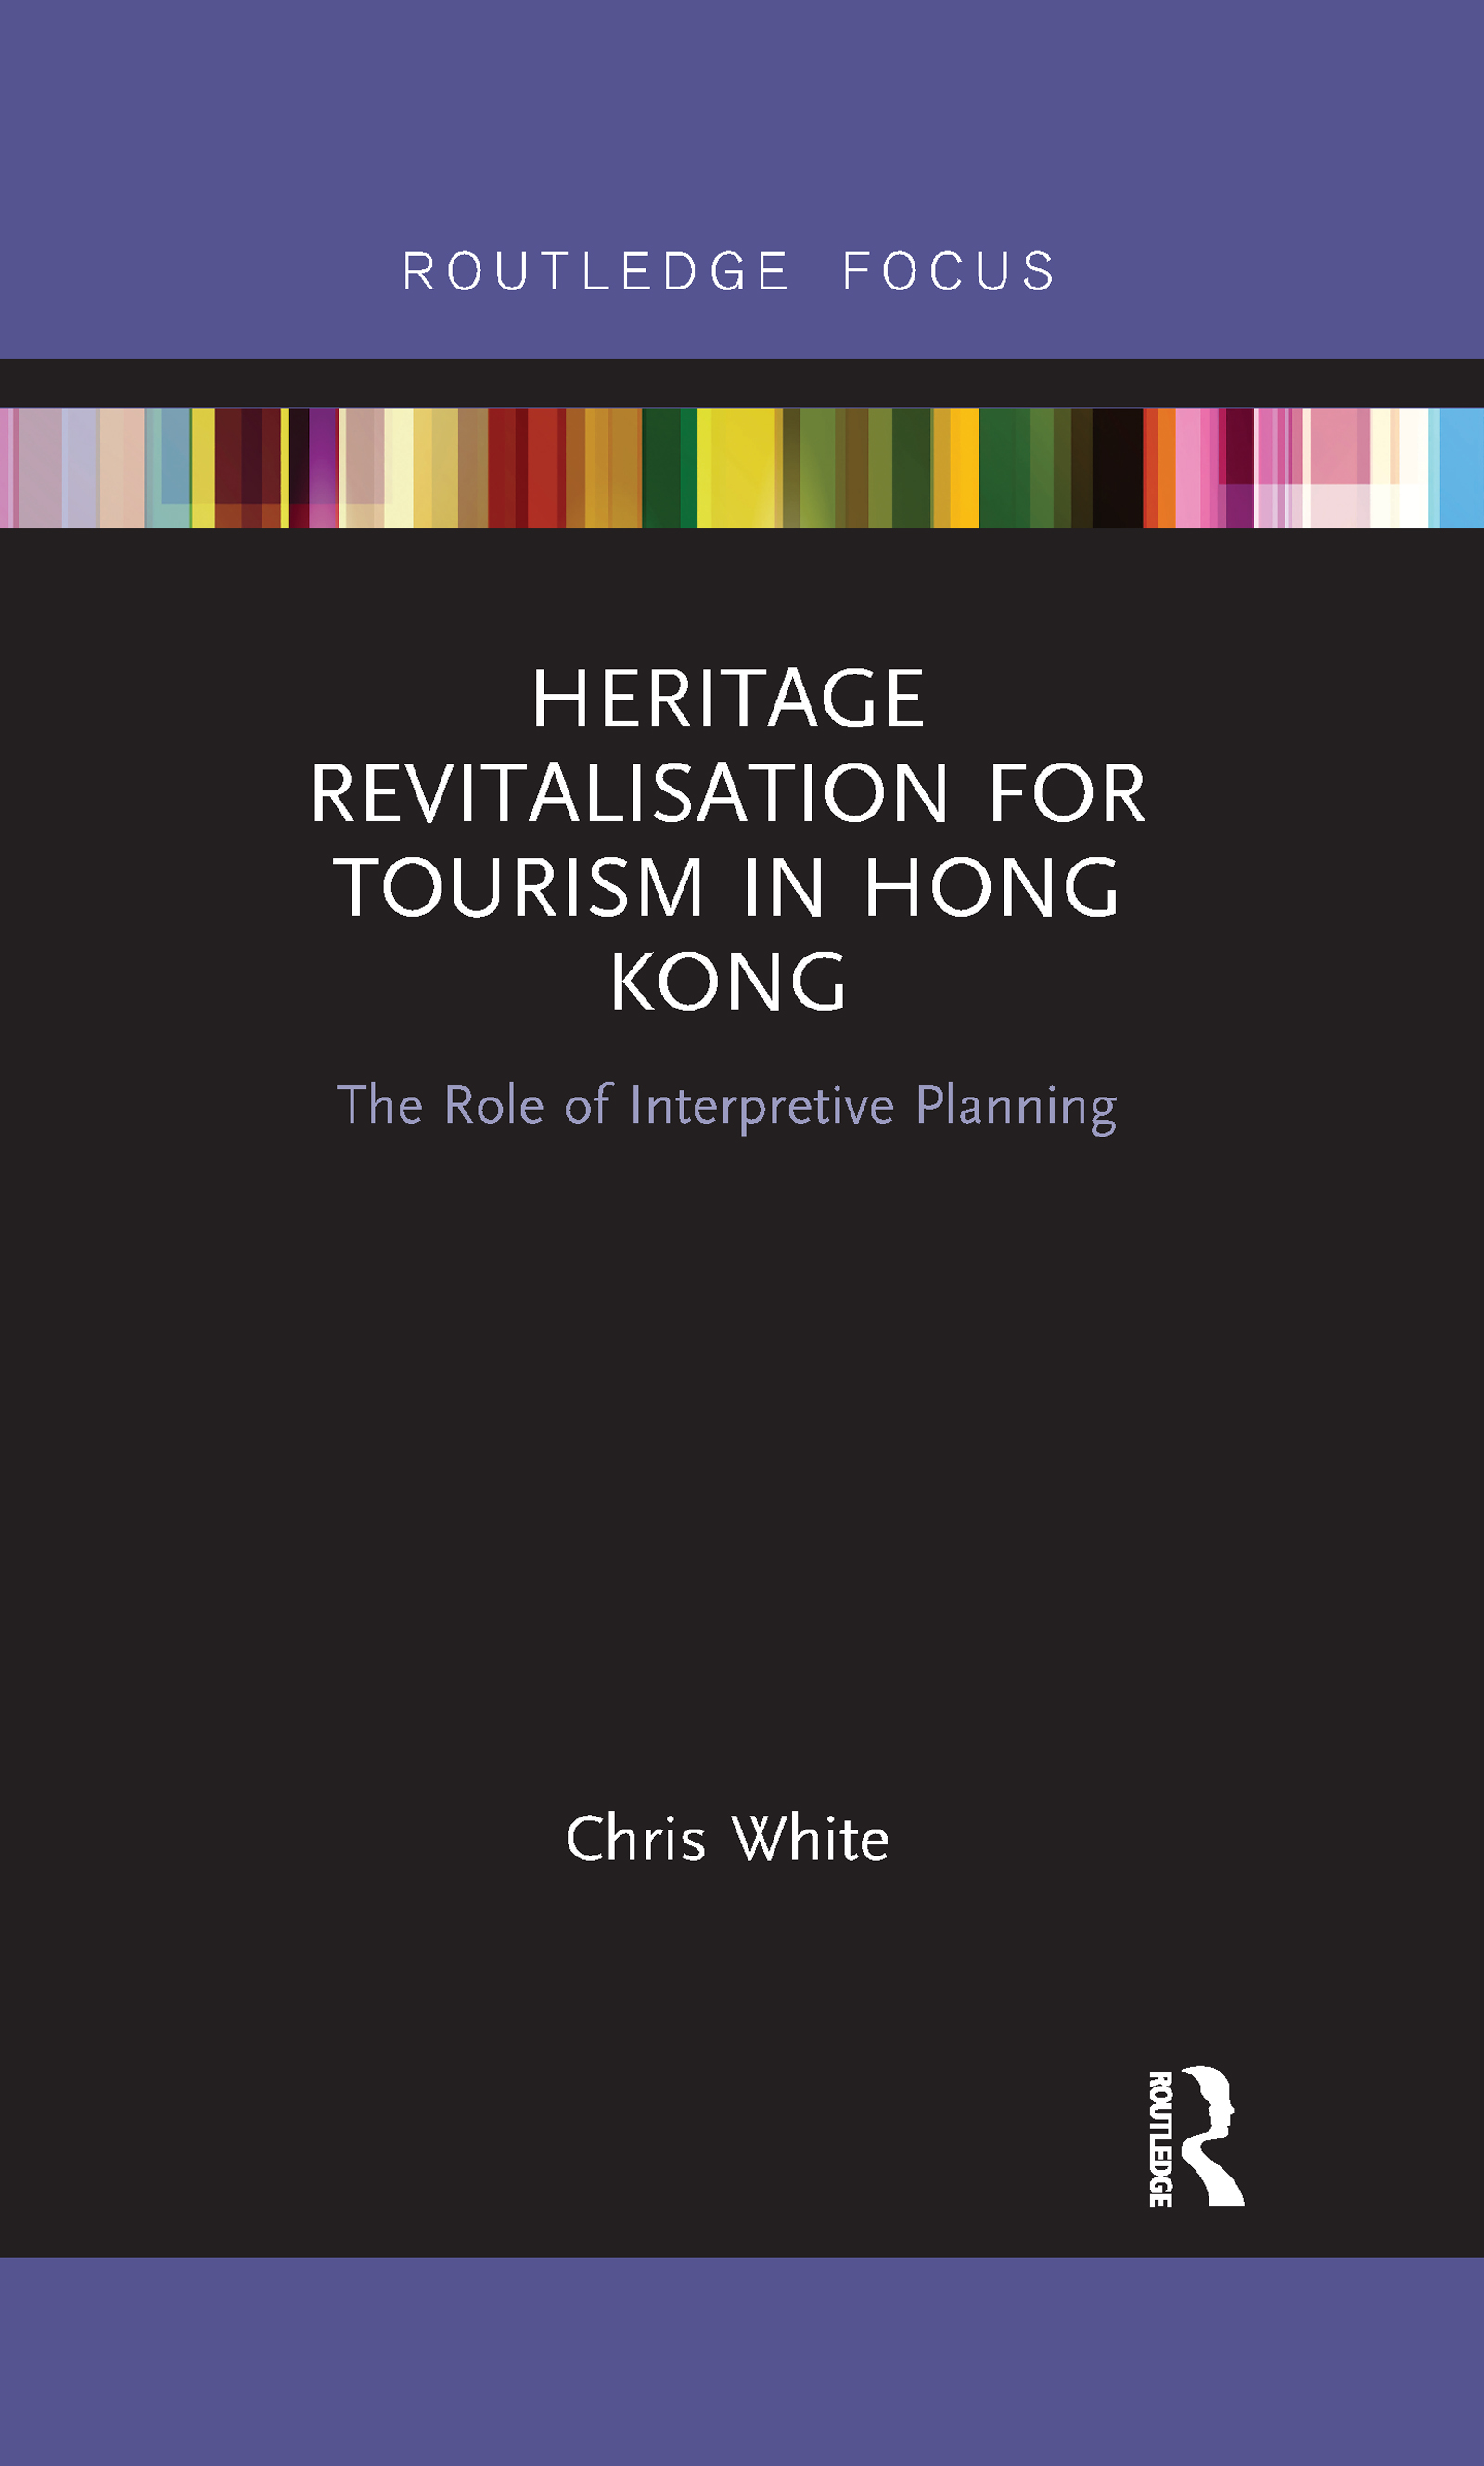 Heritage Revitalisation for Tourism in Hong Kong